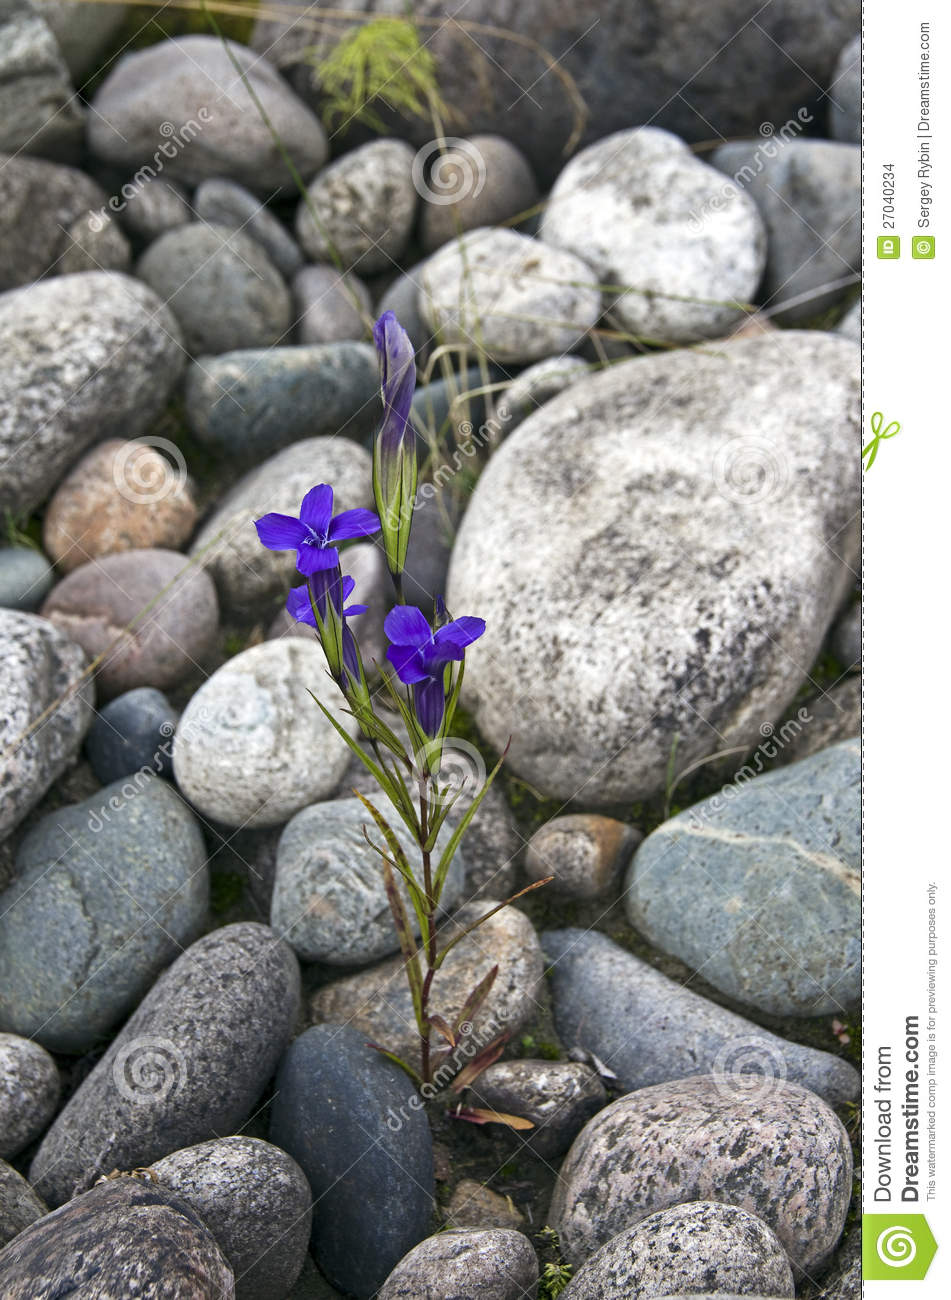 Flowers Growing On The Rocks. Stock Images - Image: 27040234